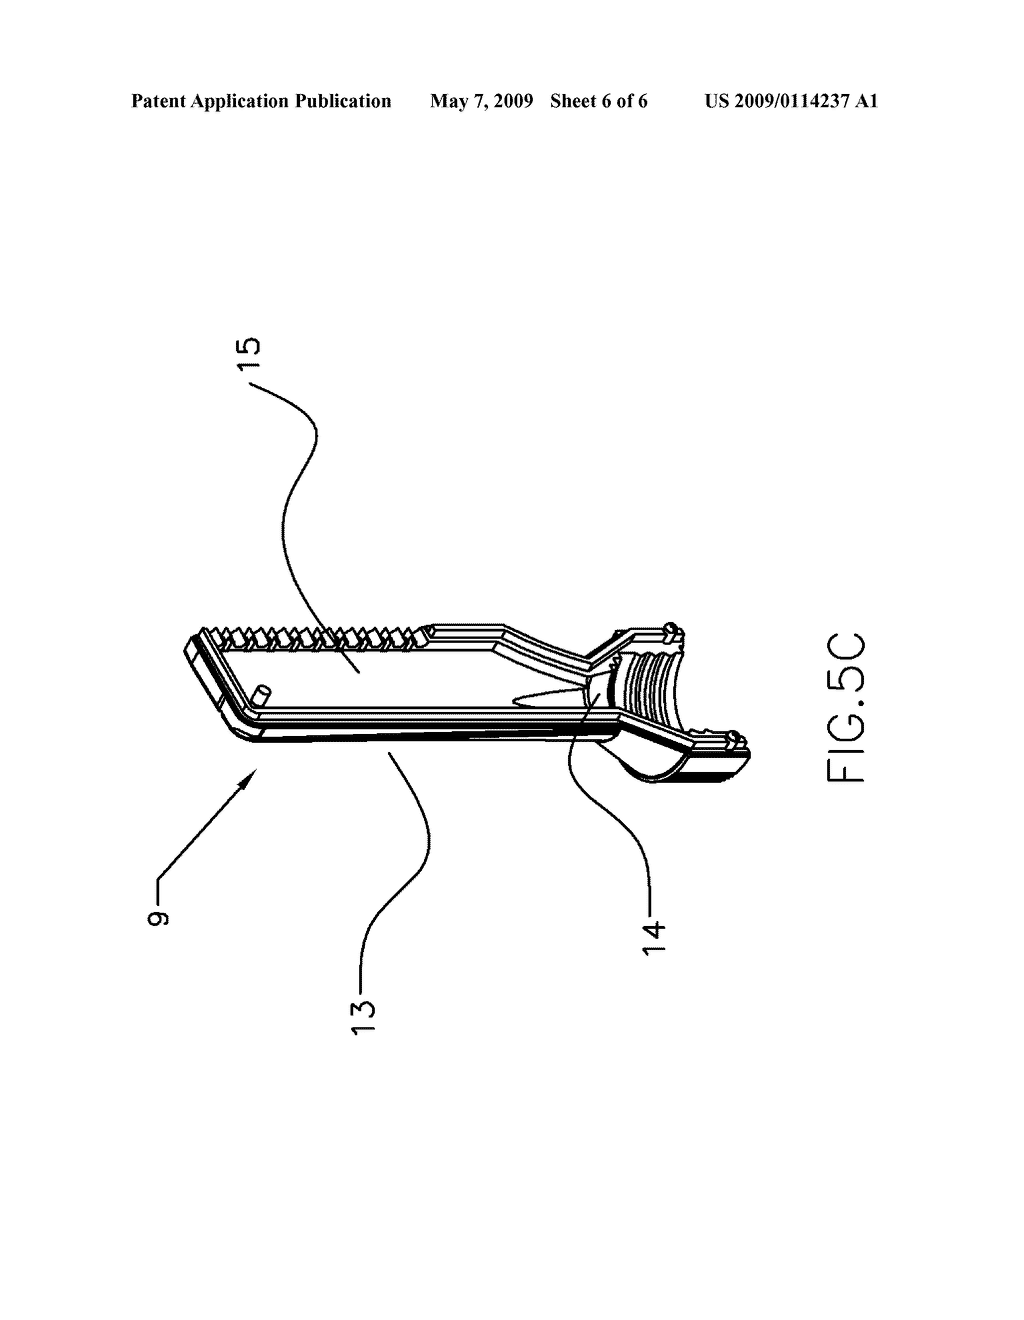 AIR OXIDATION HAIR DYE APPLICATION SYSTEM AND METHOD FOR COLORING HAIR USING THE SAME - diagram, schematic, and image 07